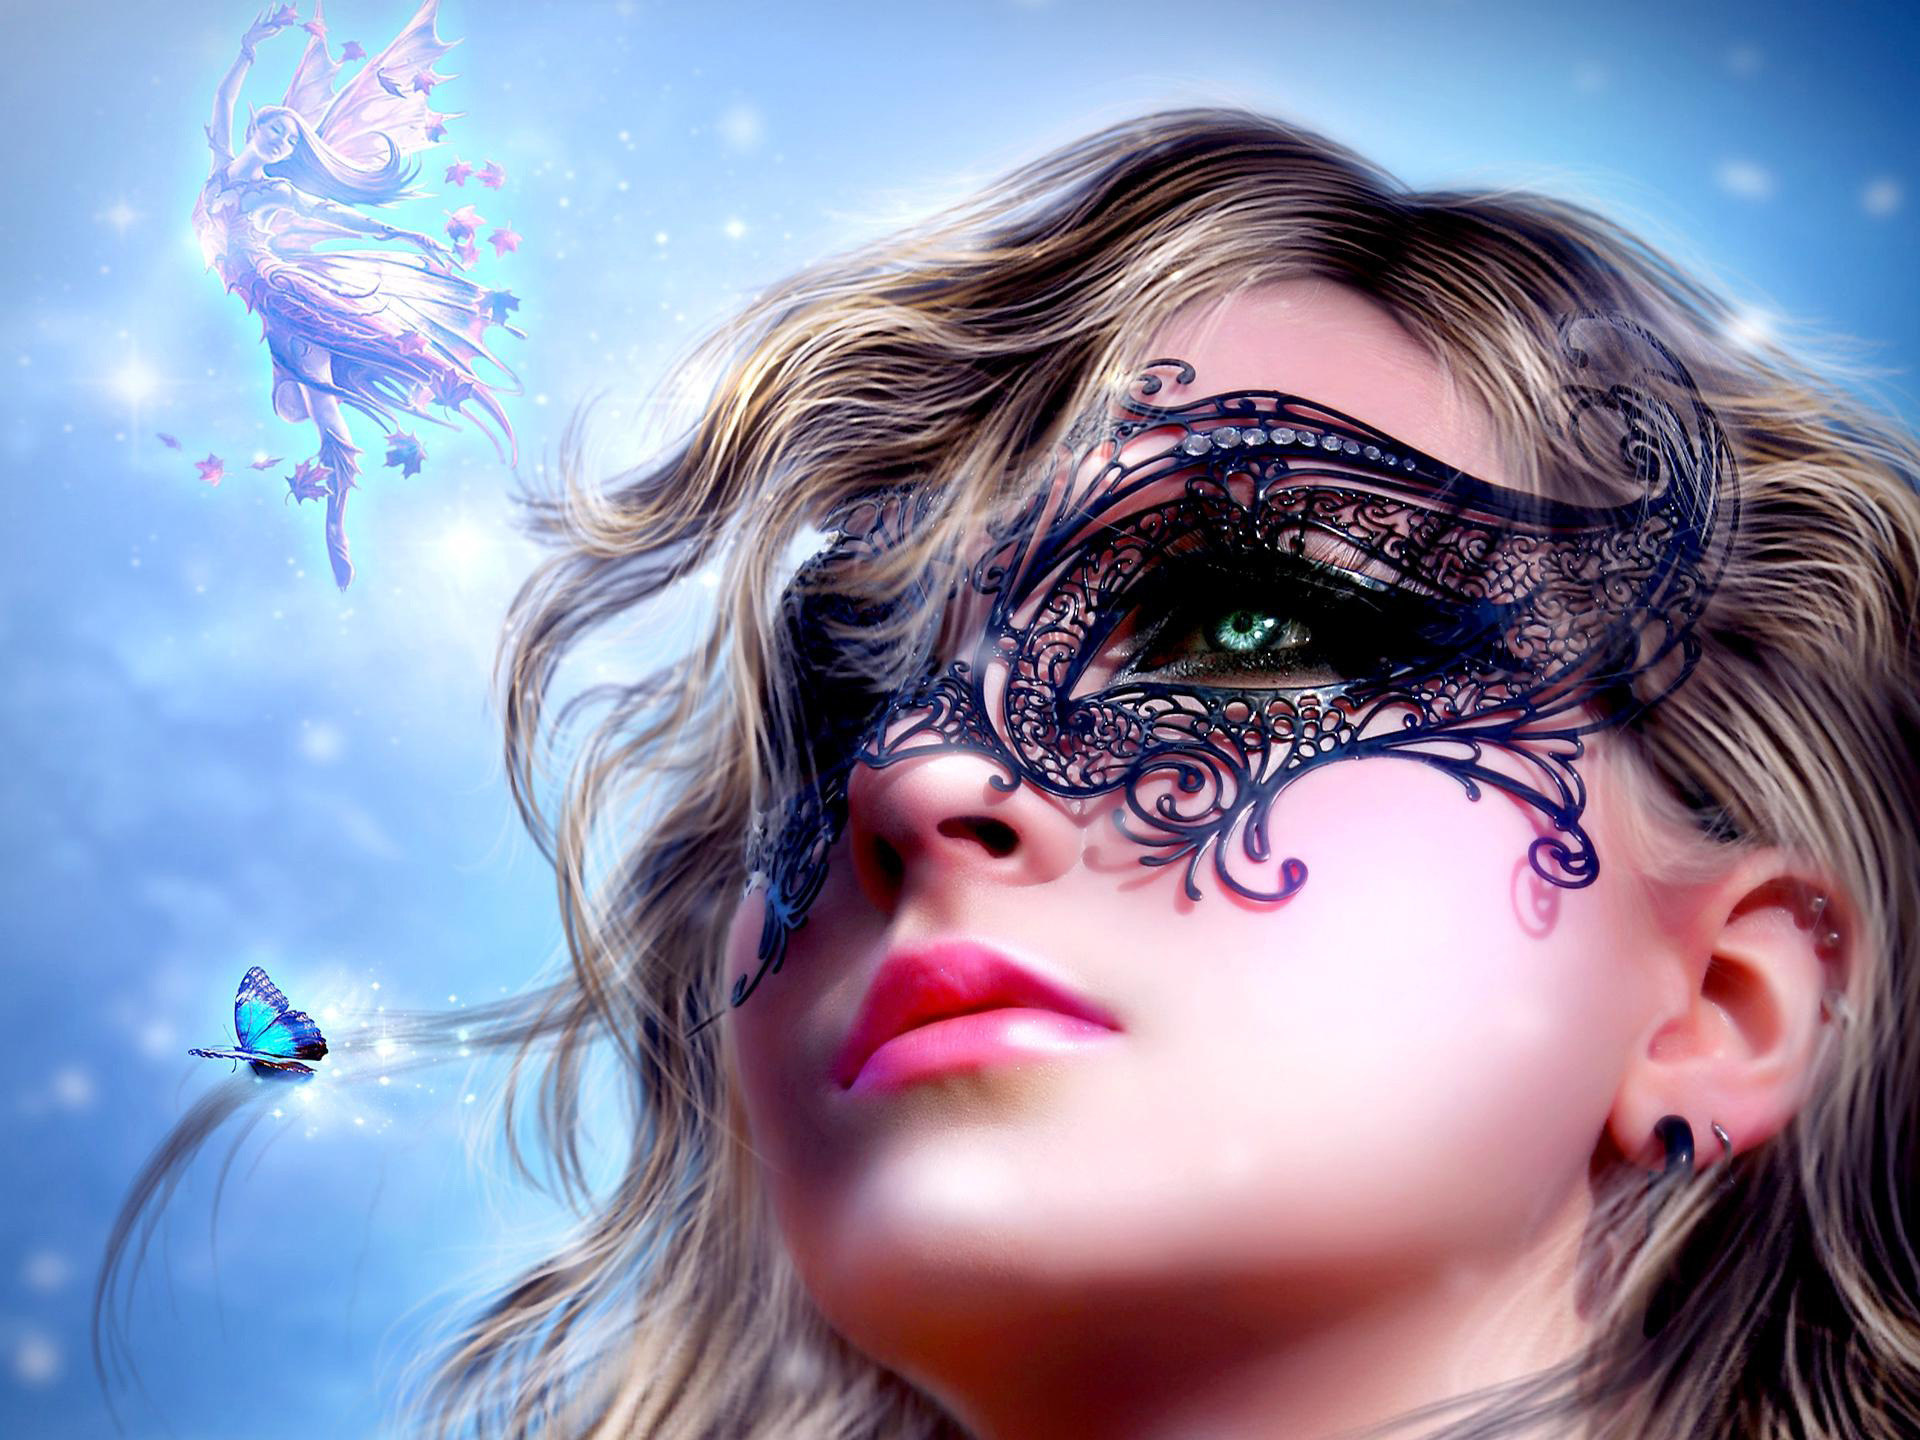 3d girly wallpaper 64 images - 3d fantasy wallpaper ...